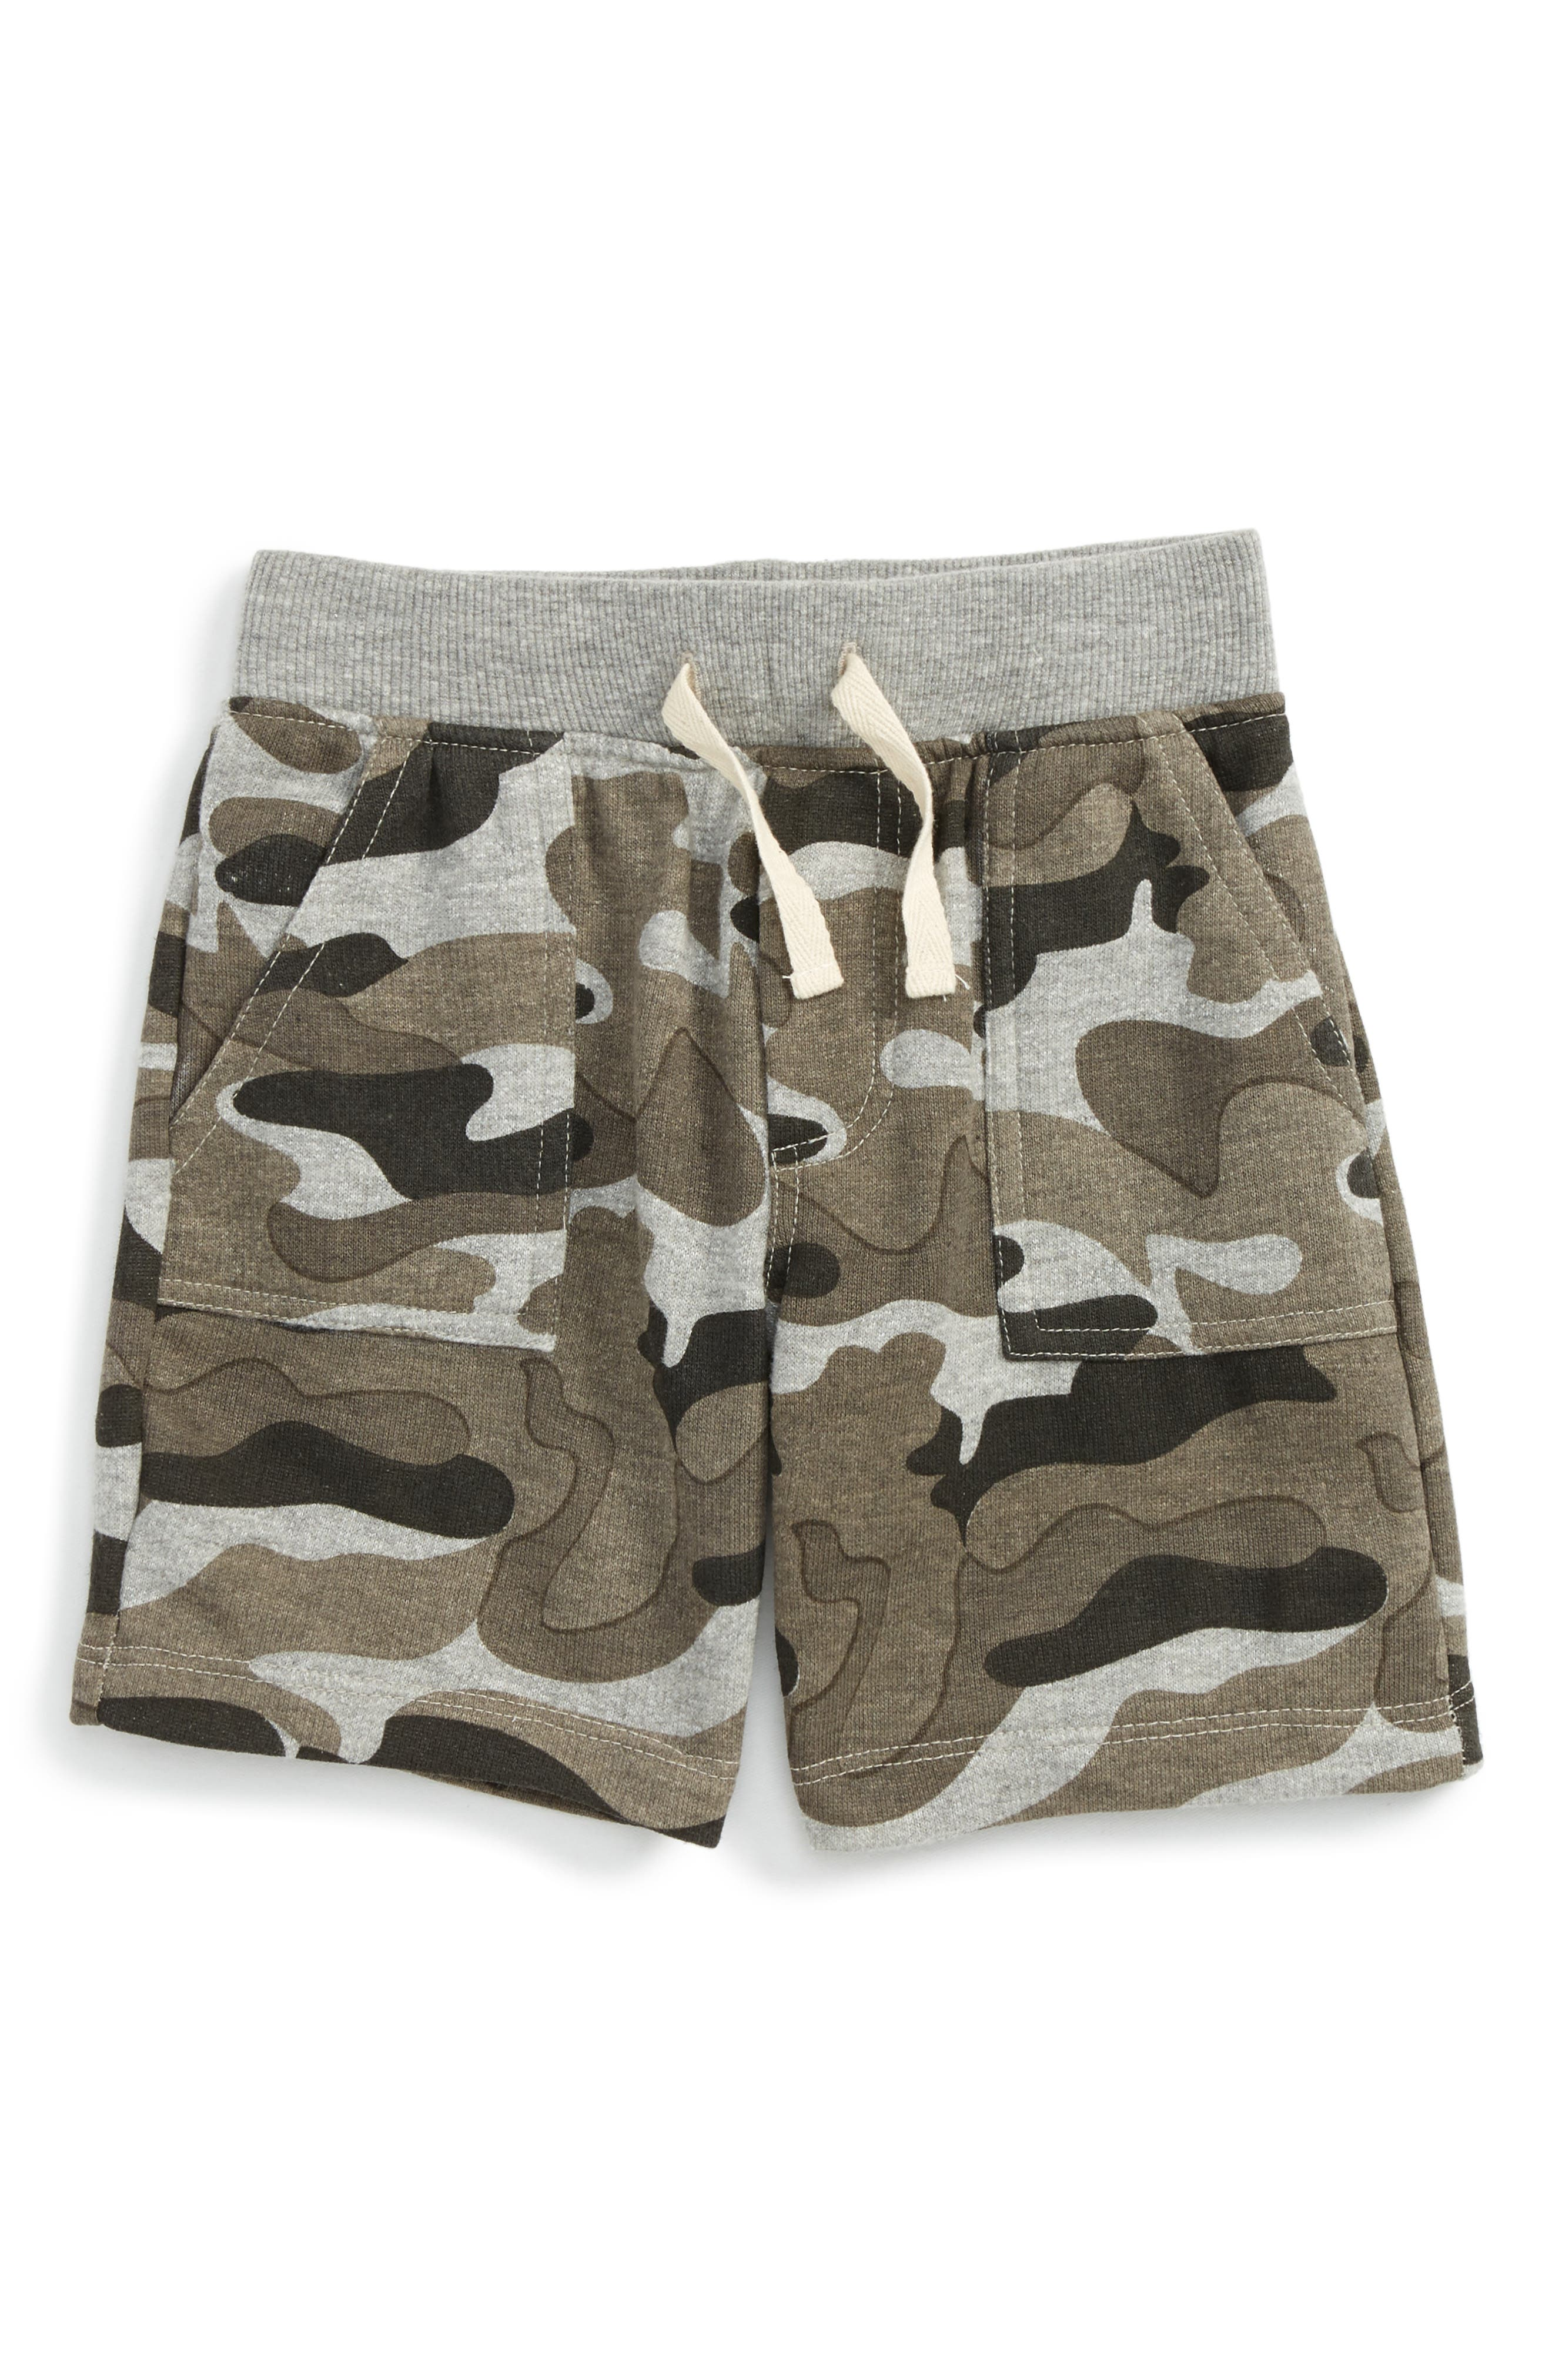 Stephen Camo Shorts,                             Main thumbnail 1, color,                             Grey Camo